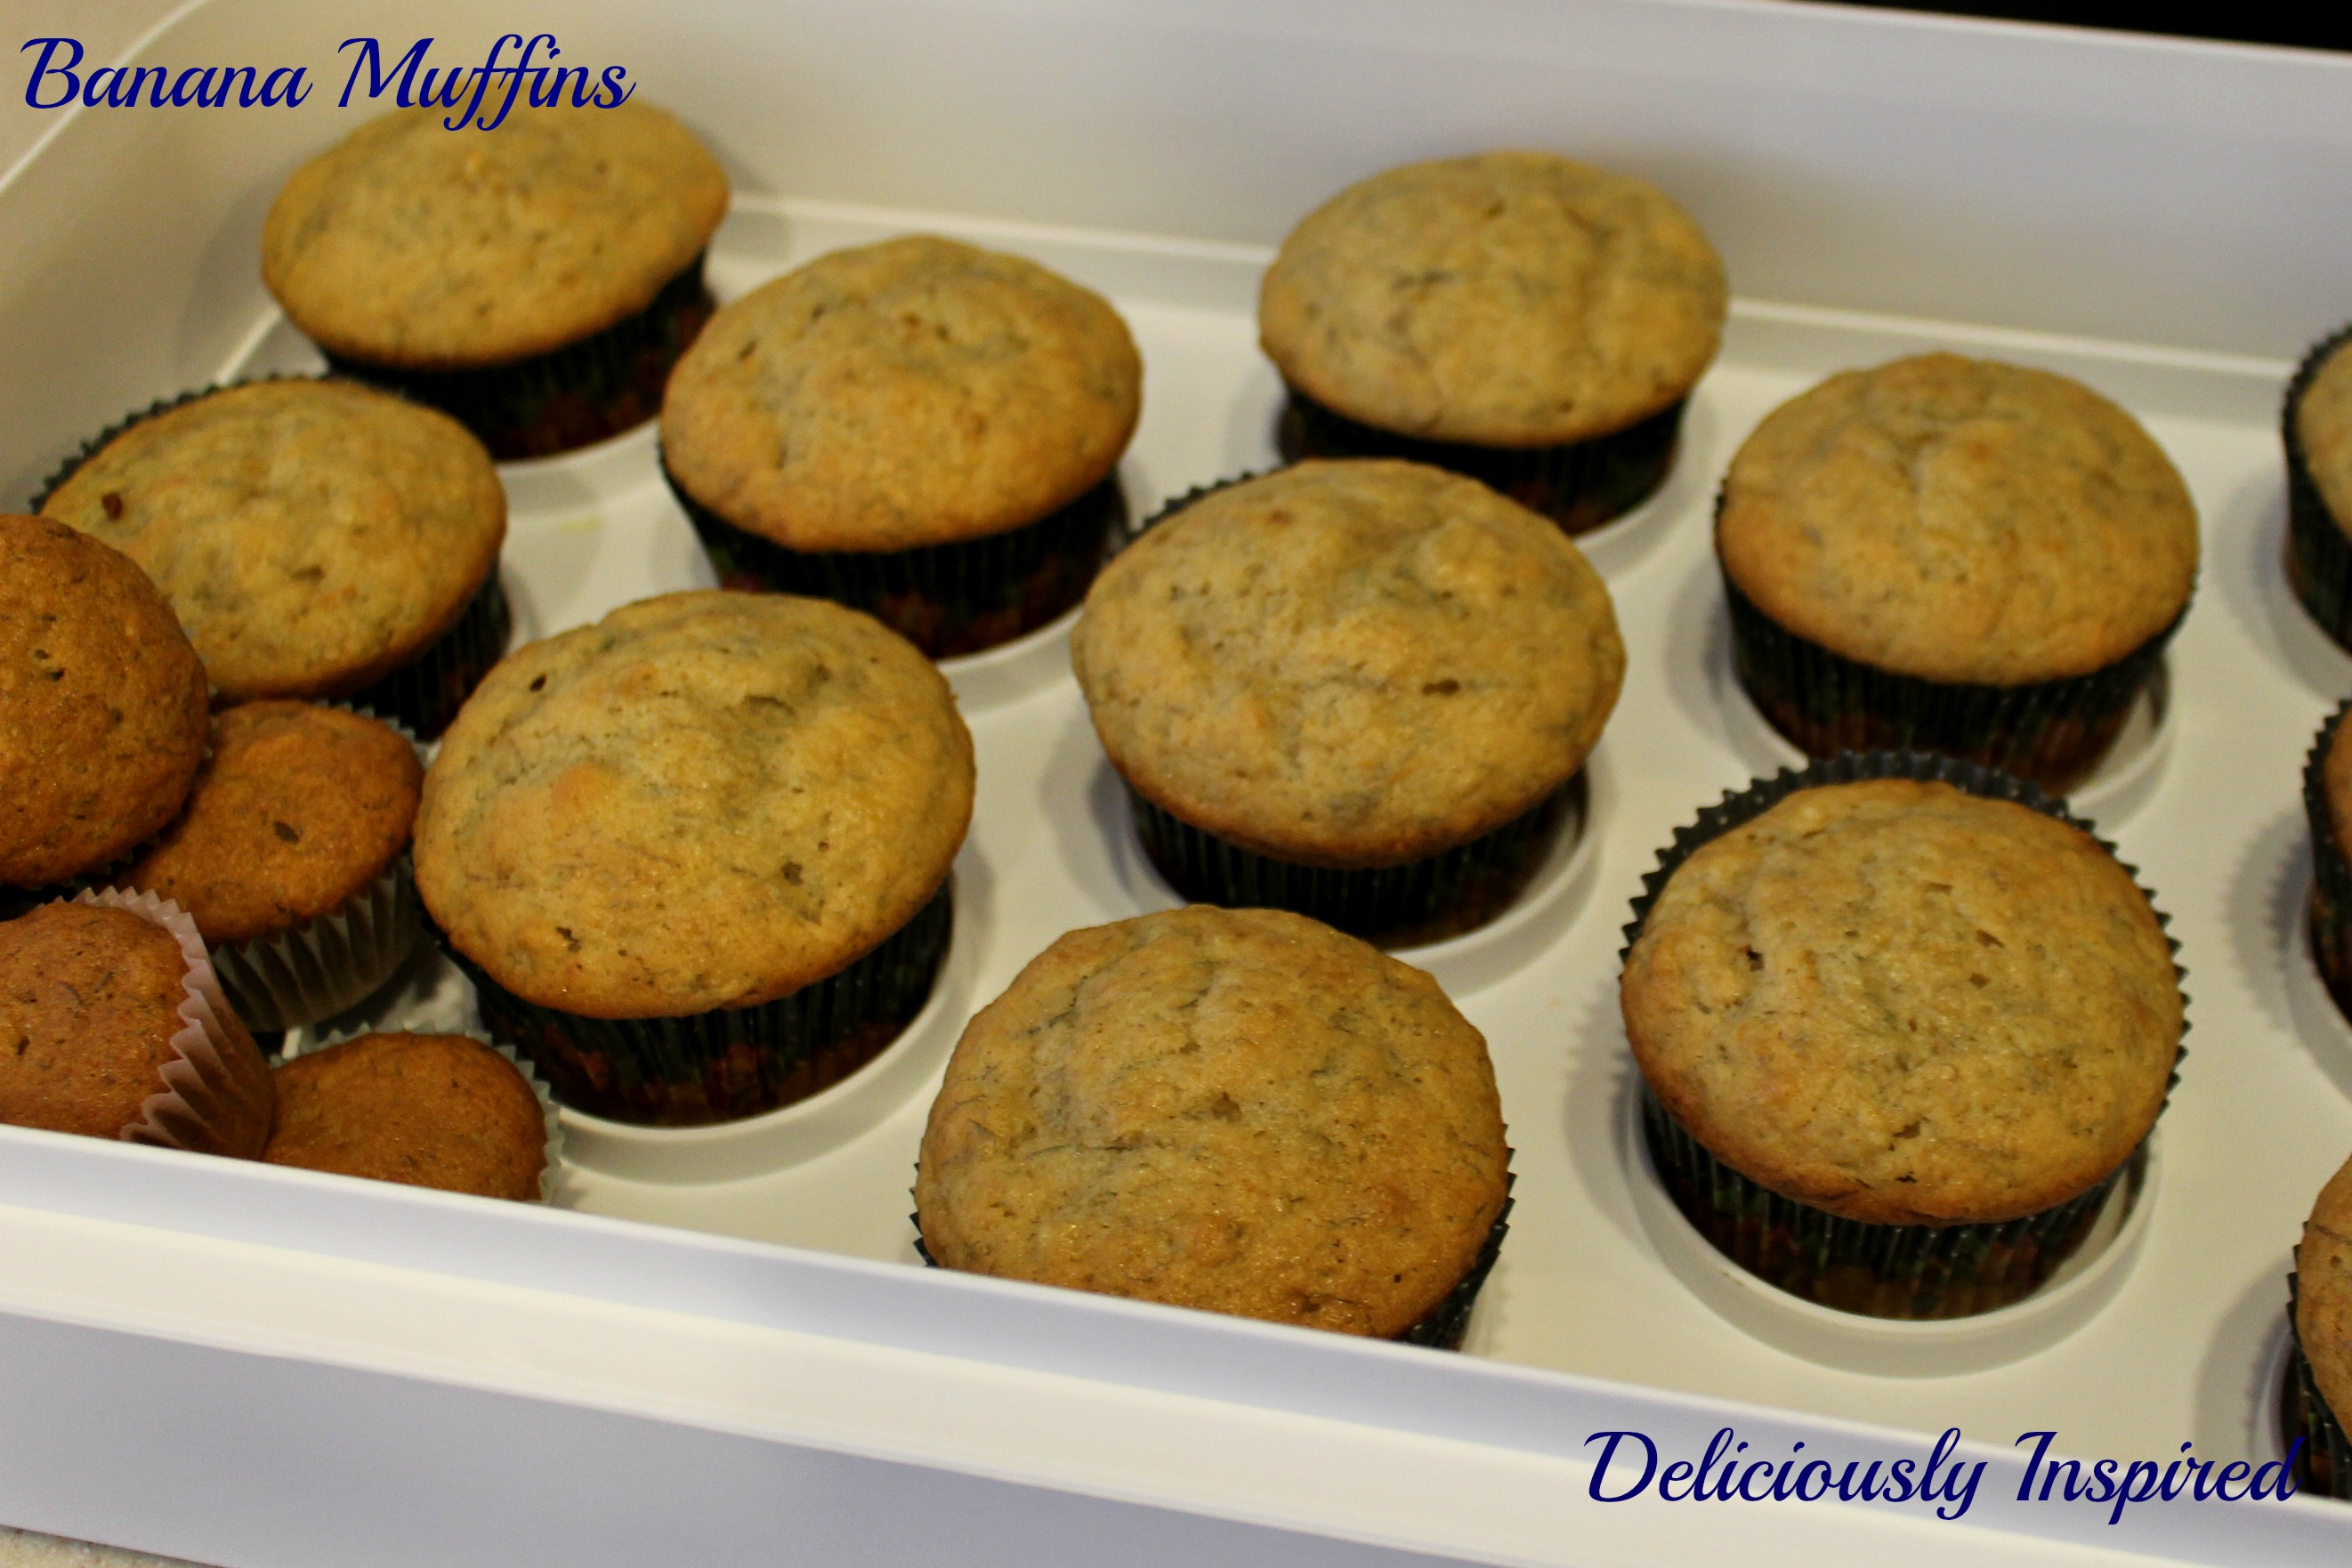 Banana Muffins - Big and Small